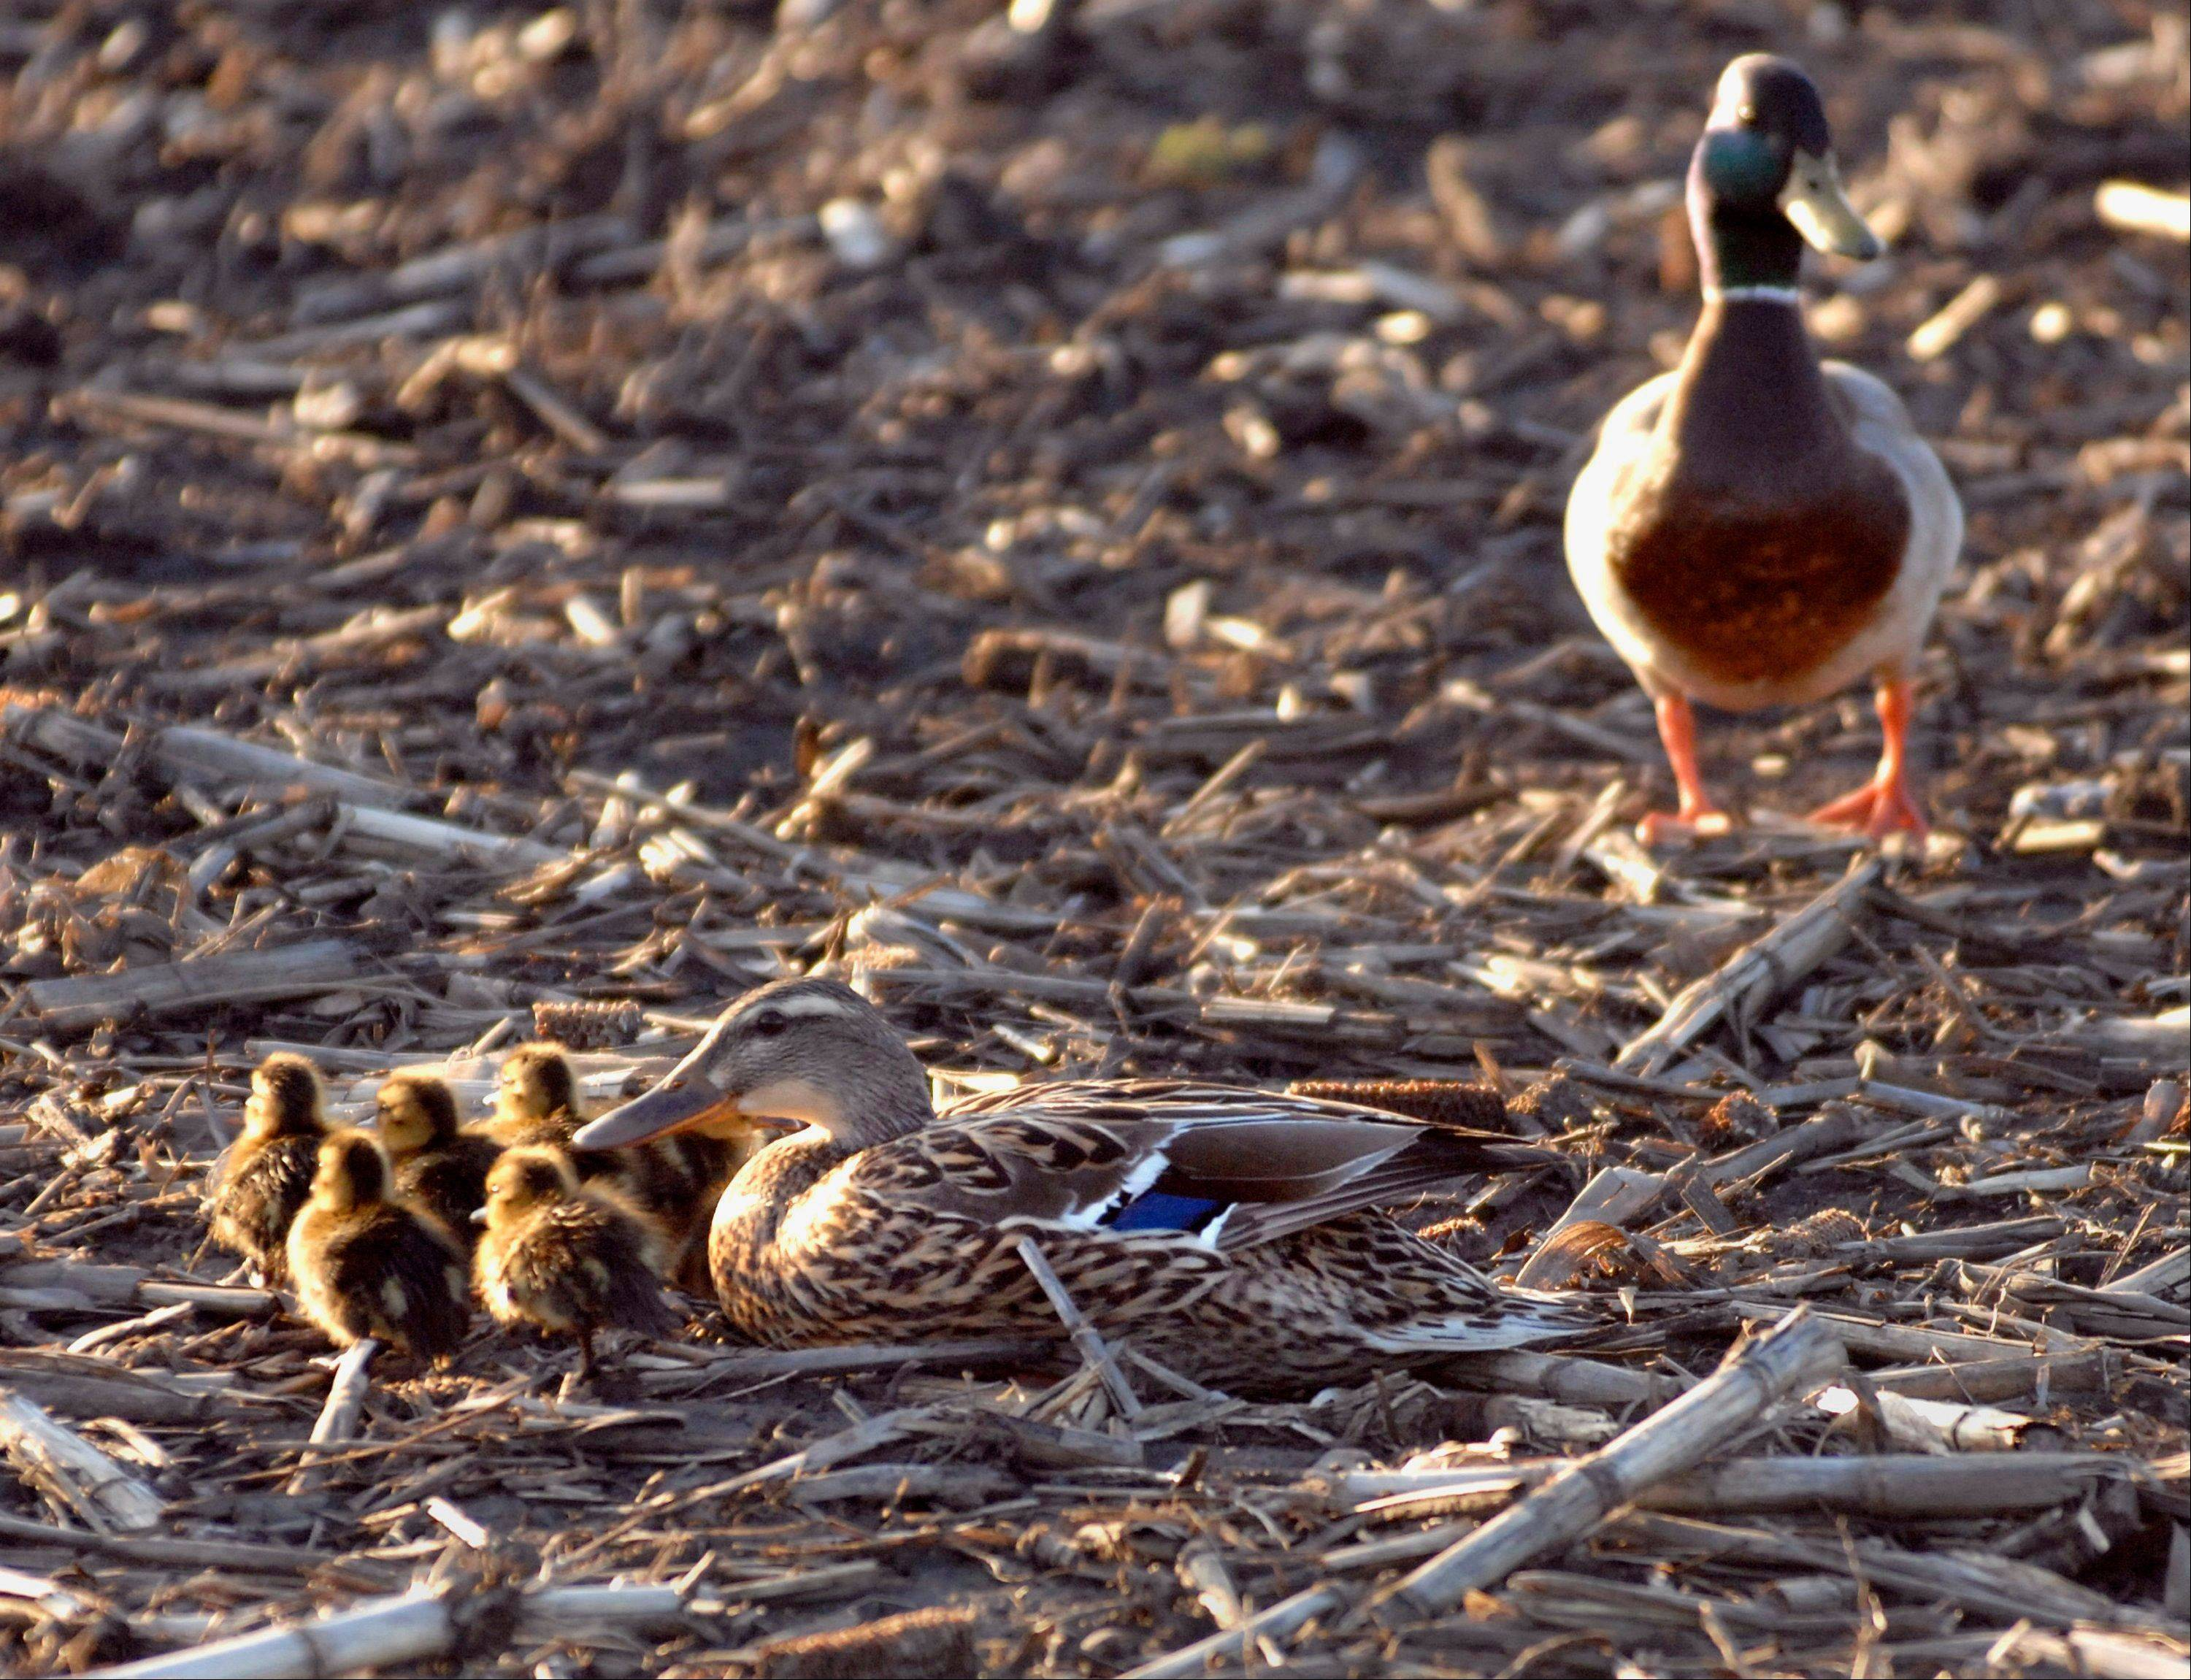 Ducklings reunite with their parents after being rescued from a storm sewer by police officers in Normal on Thursday.